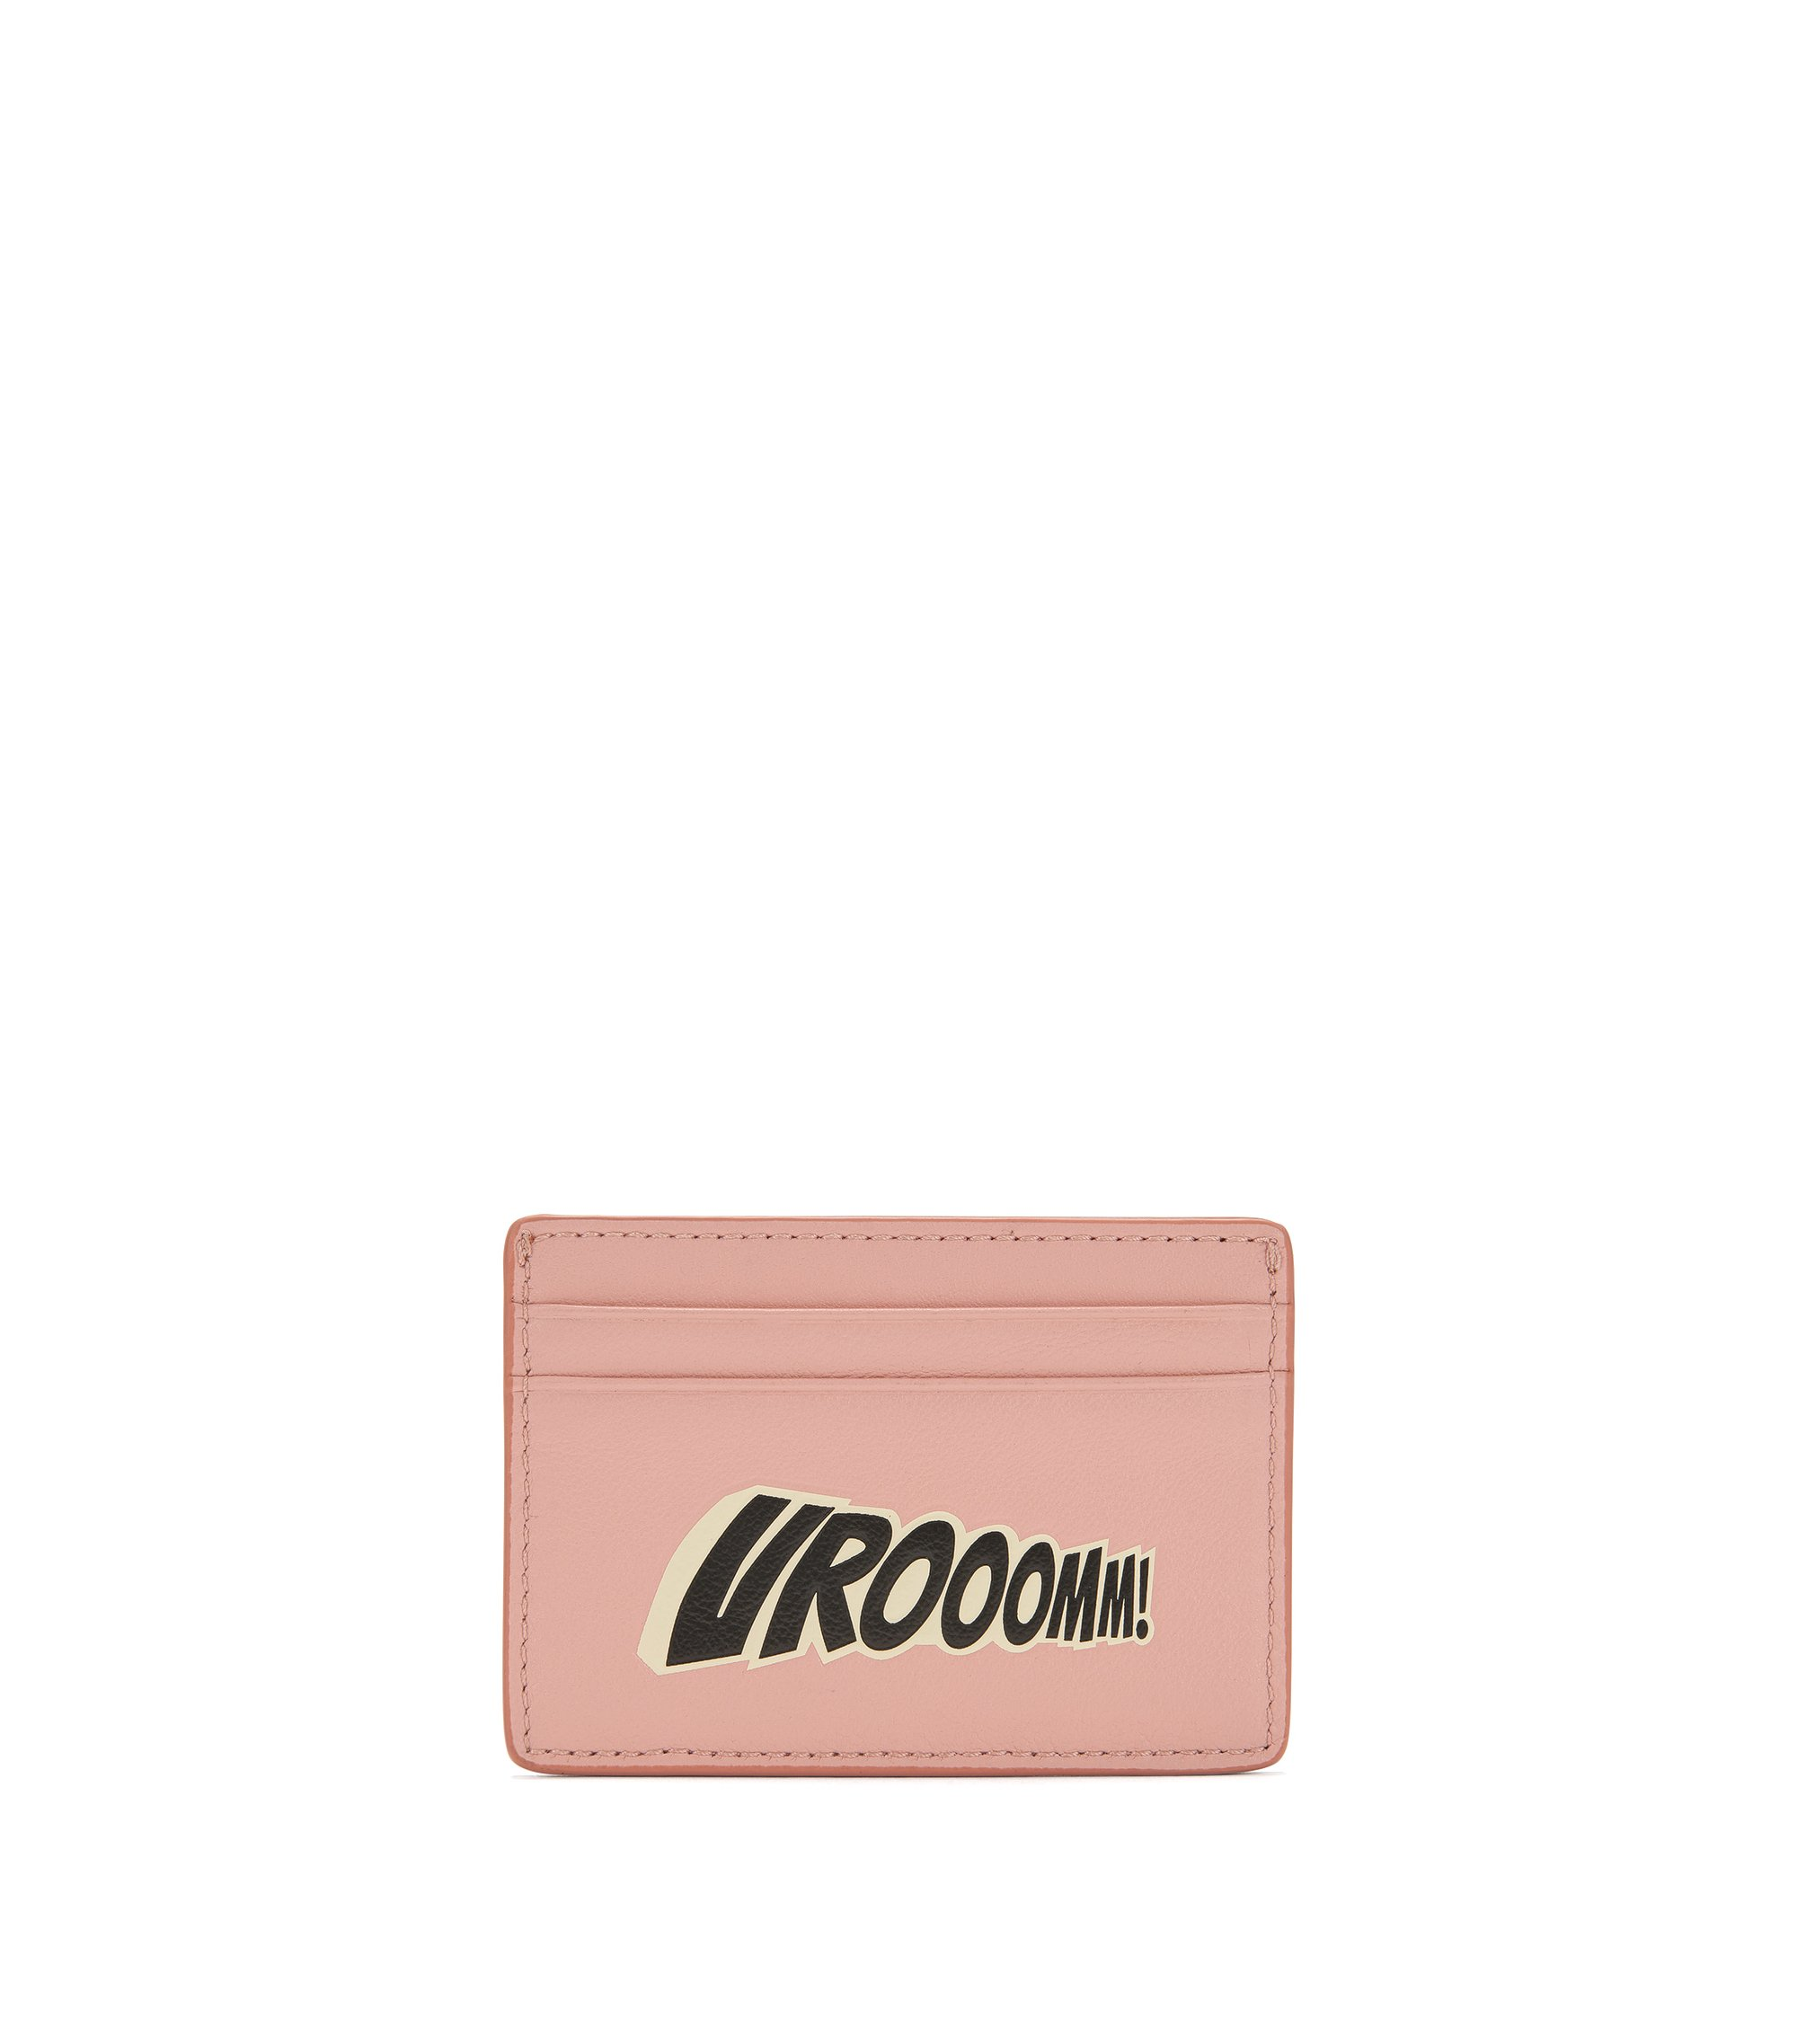 Leather card holder with playful slogan, light pink